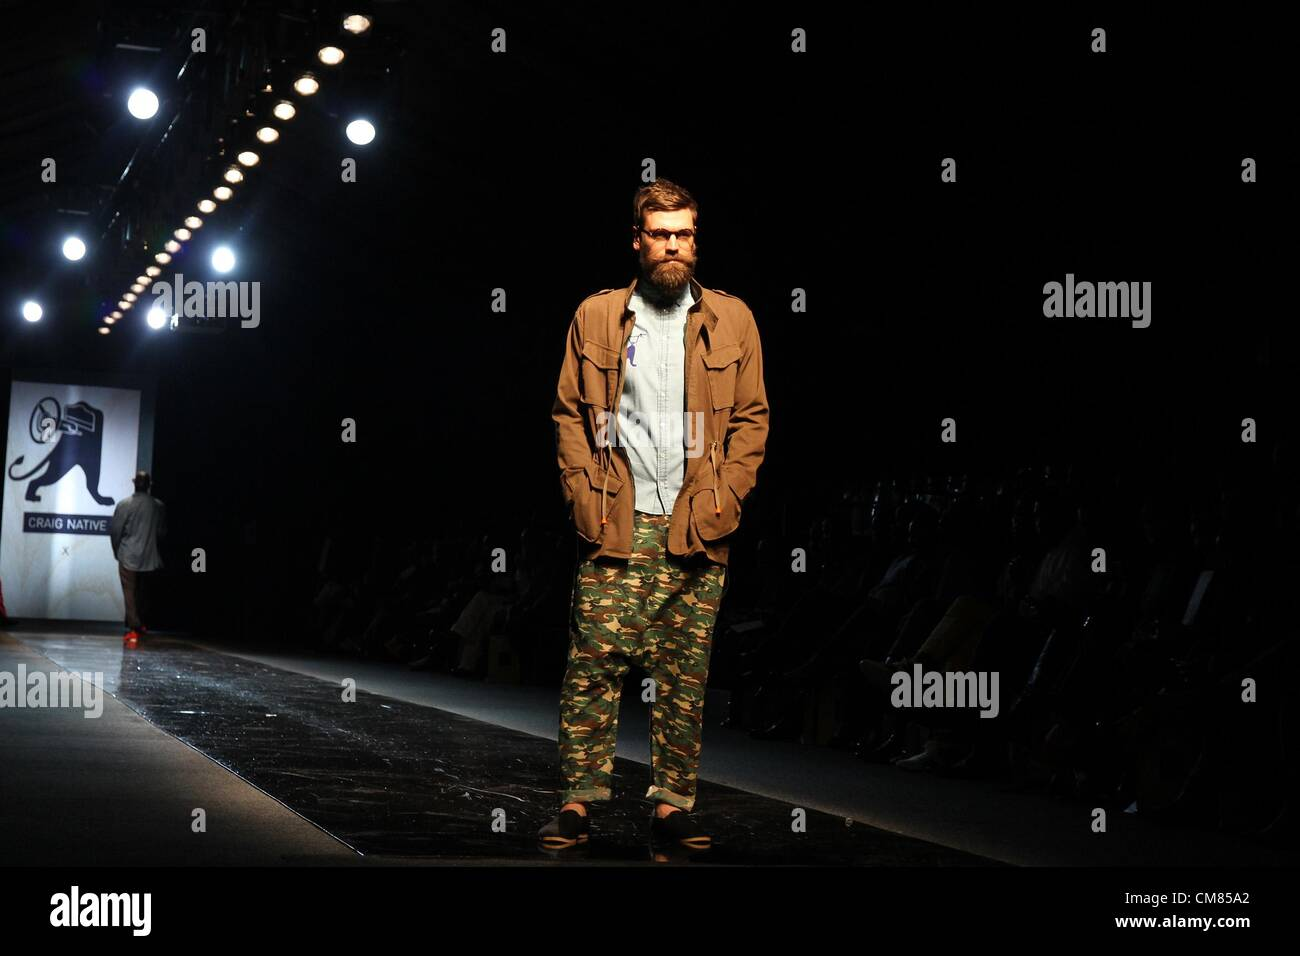 Johannesburg South Africa October 25 A Male Model Showcases A Stock Photo Alamy